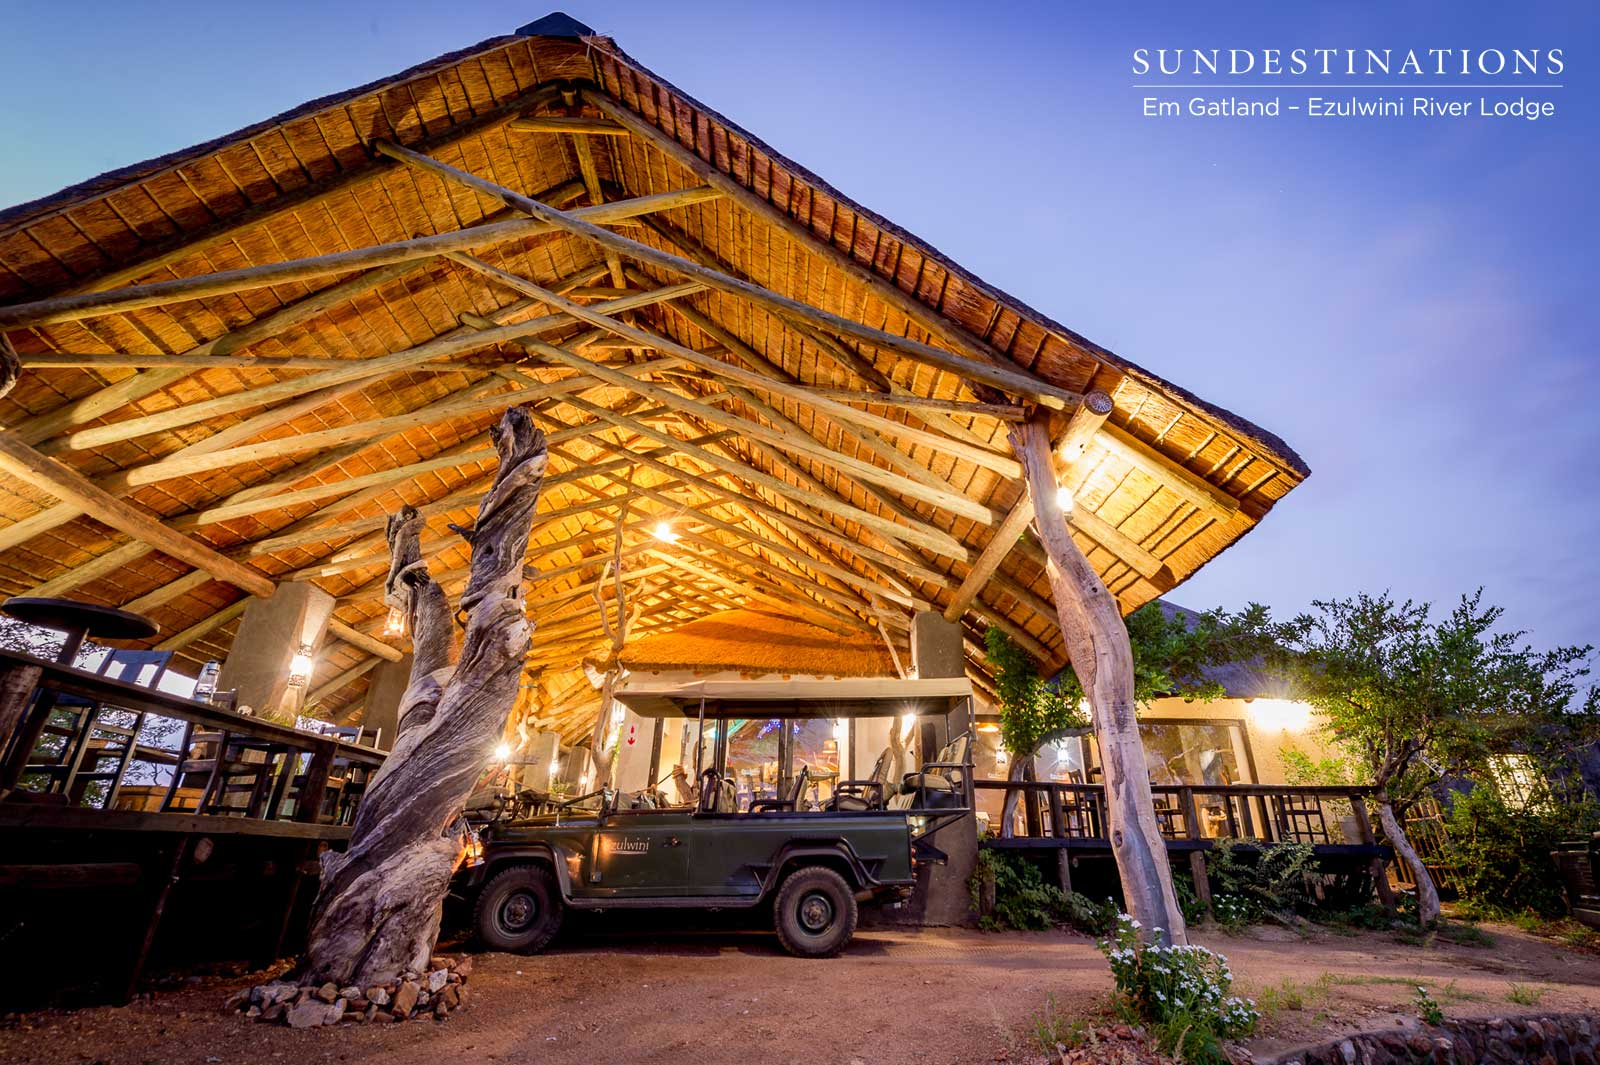 From Sunrise to Sunset : The Safari Life at Ezulwini Game Lodges